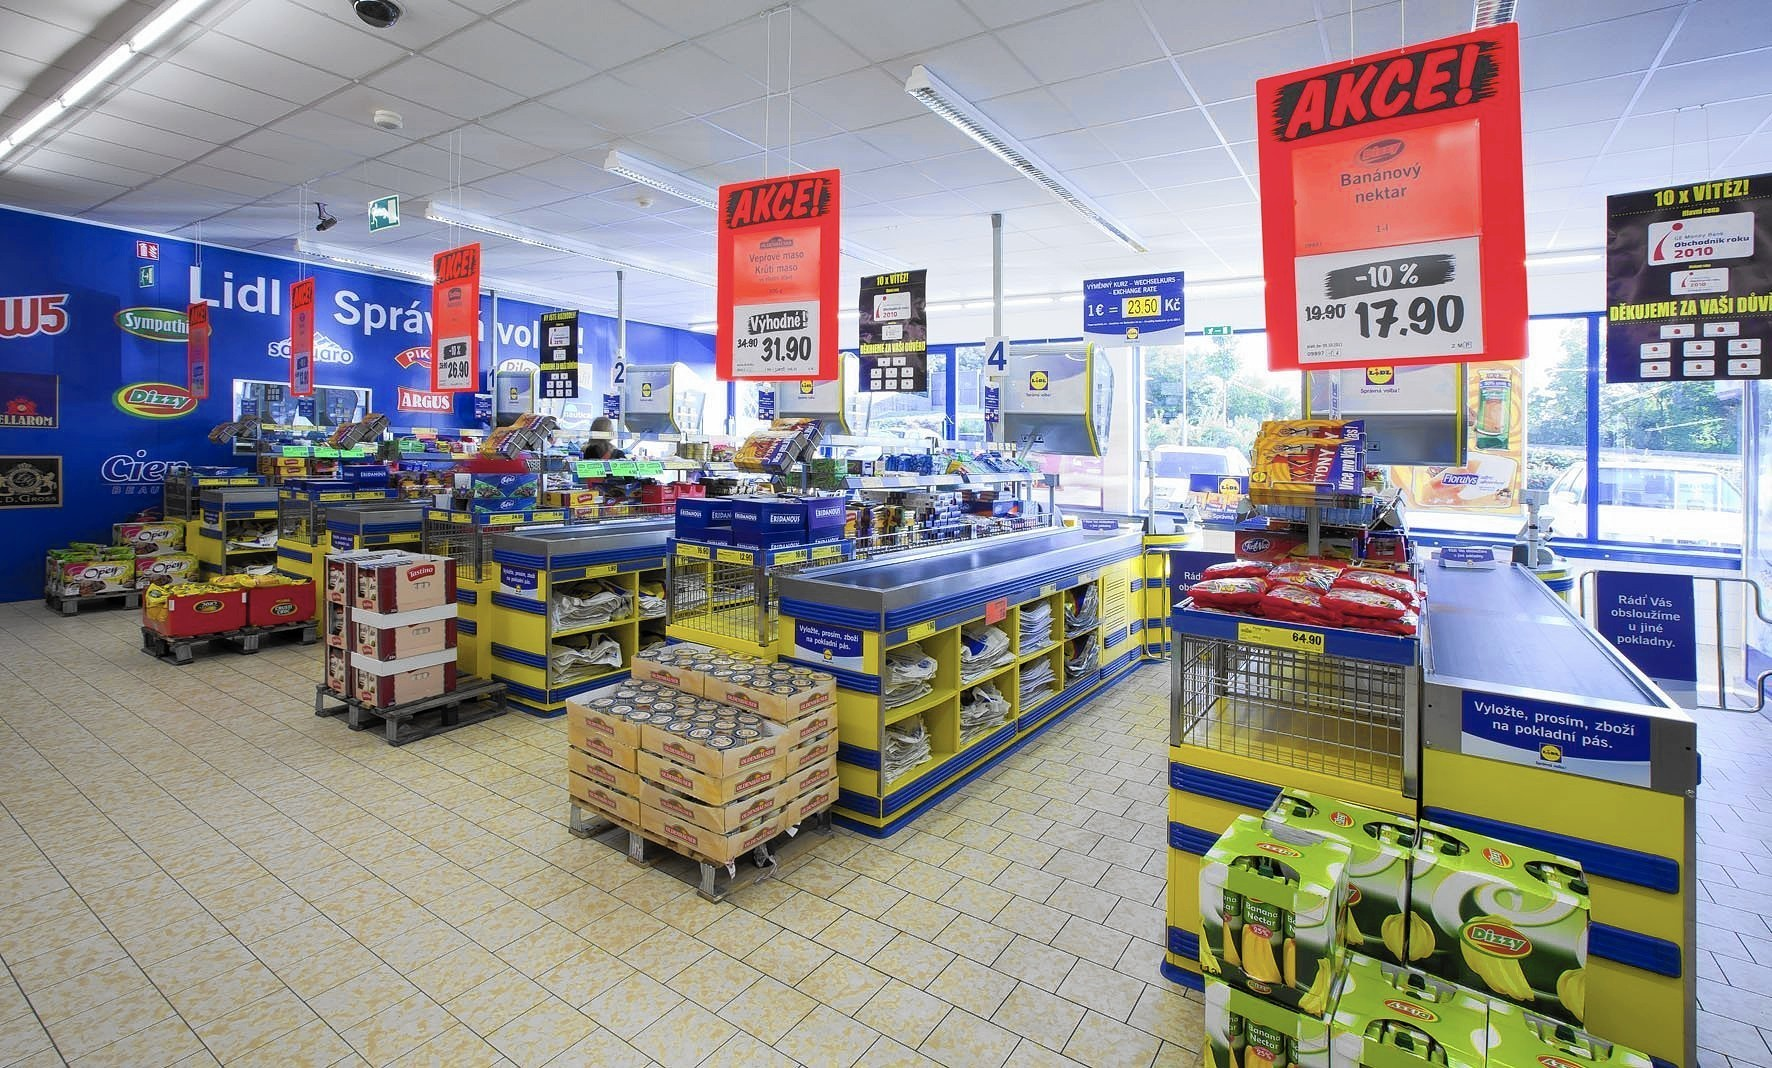 German grocery chain Lidl targets Annapolis for U S  expansion     German grocery chain Lidl targets Annapolis for U S  expansion   Capital  Gazette